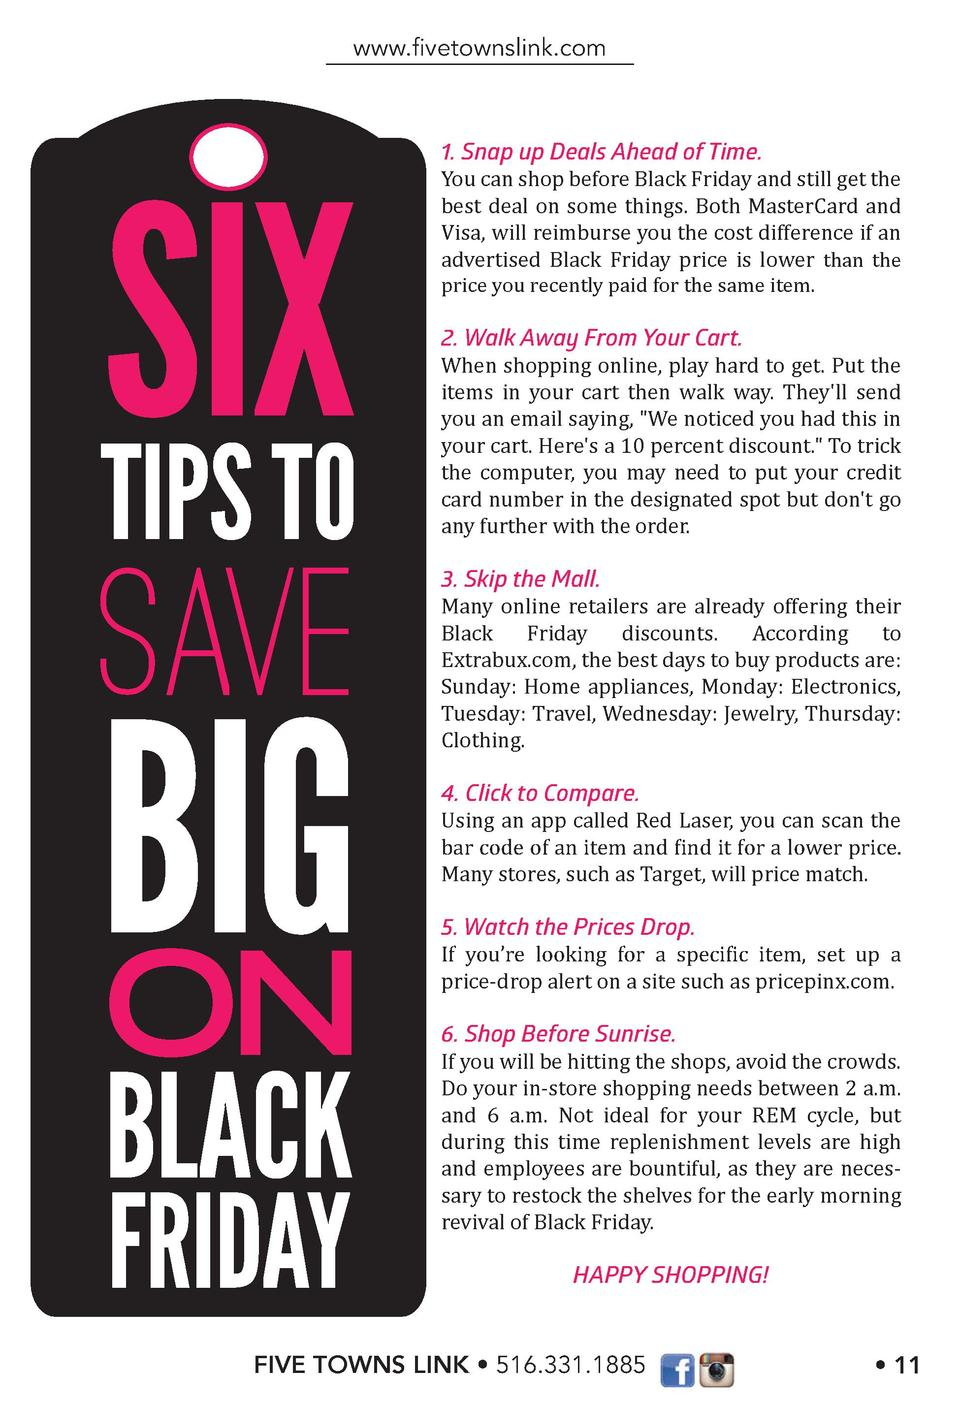 www.   vetownslink.com  SIX TIPS TO  SAVE  BIG ON BLACK FRIDAY  1. Snap up Deals Ahead of Time. You can shop before Black ...